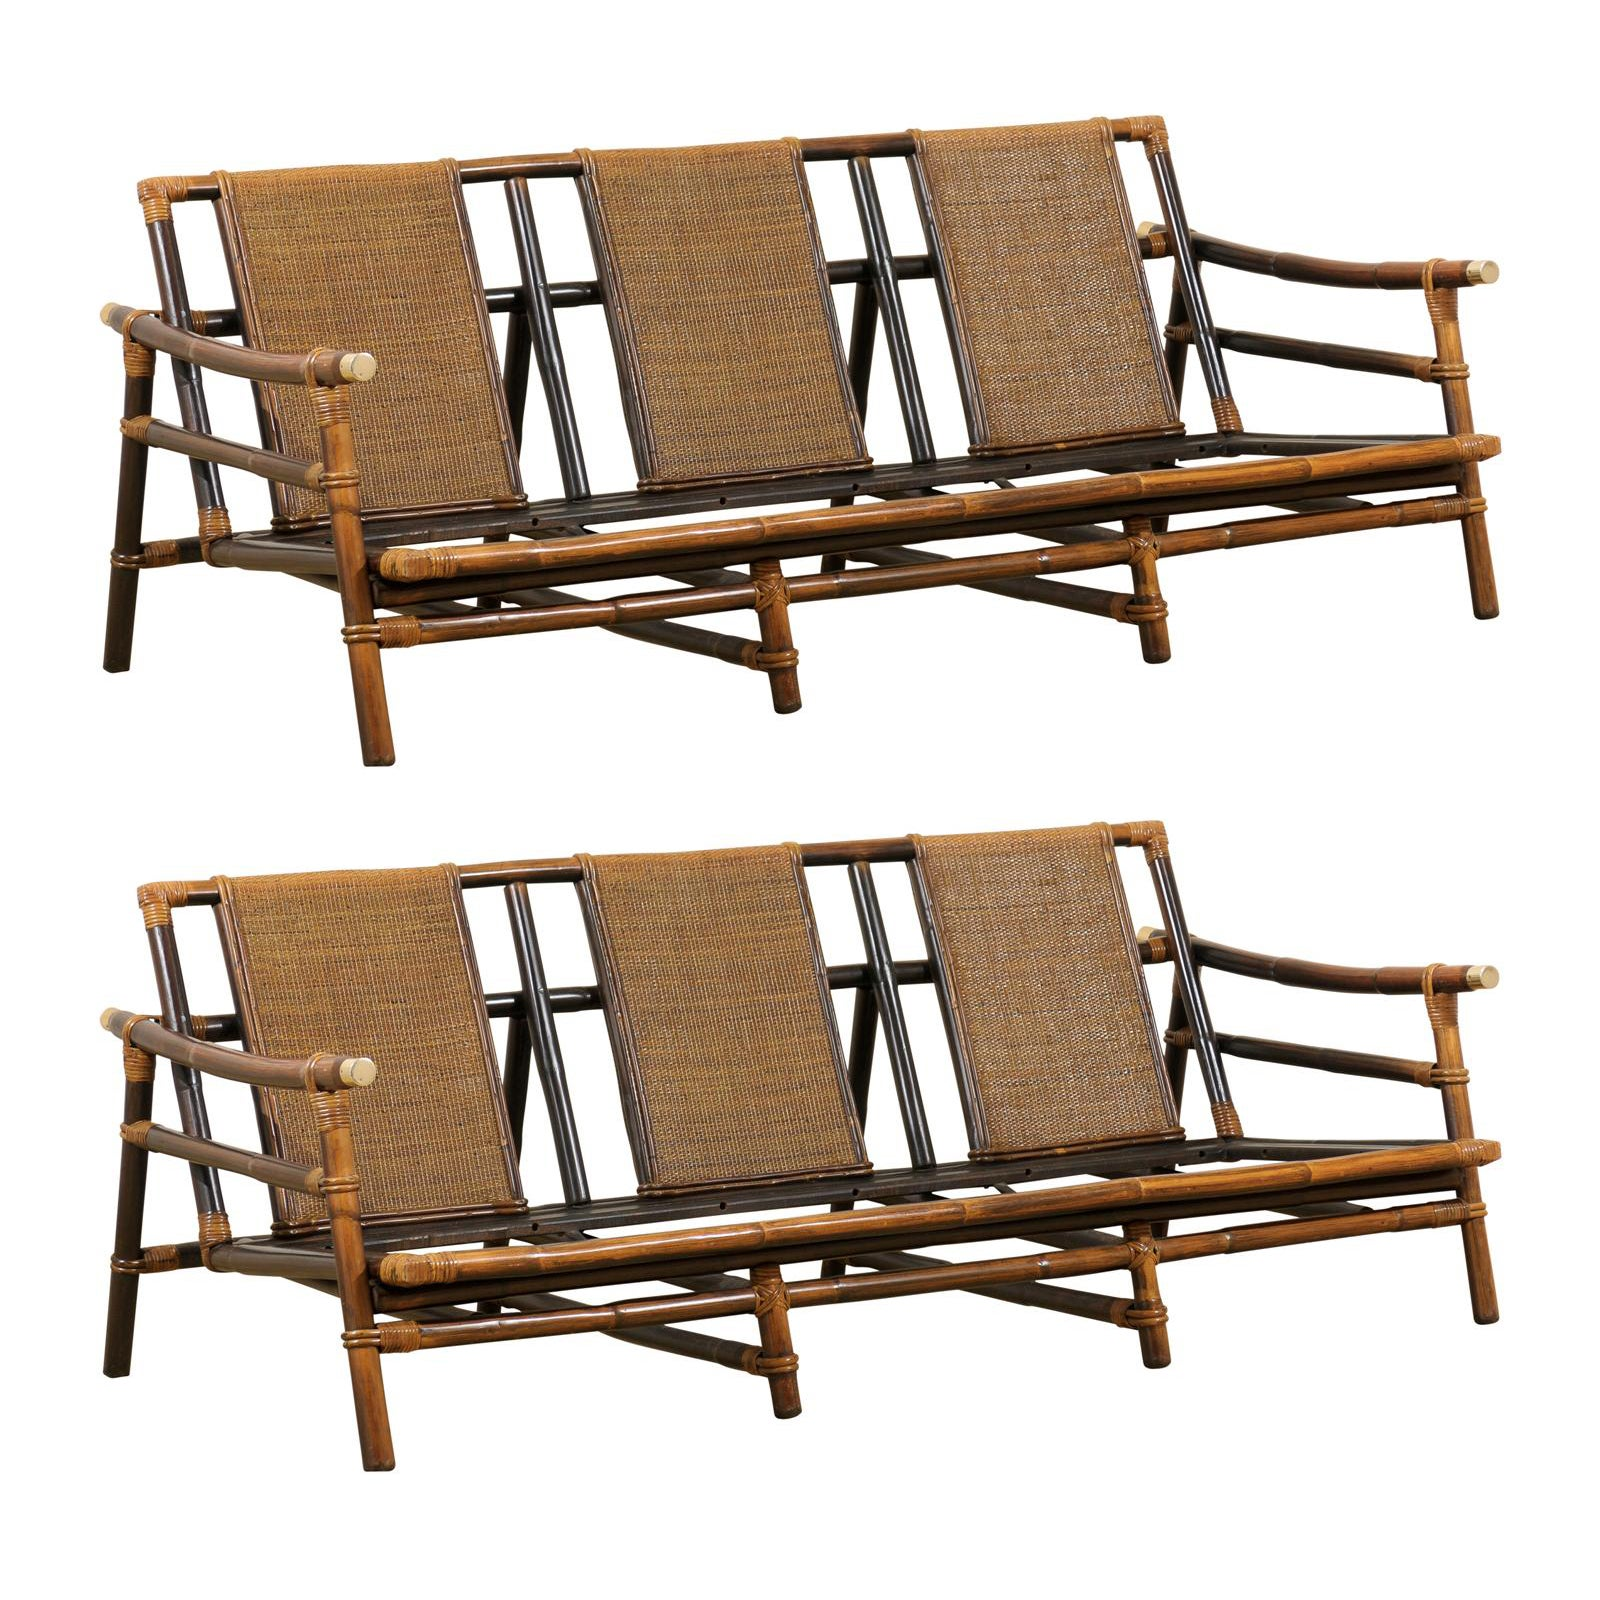 Rare Restored Sofa by John Wisner for Ficks Reed- Pair Available